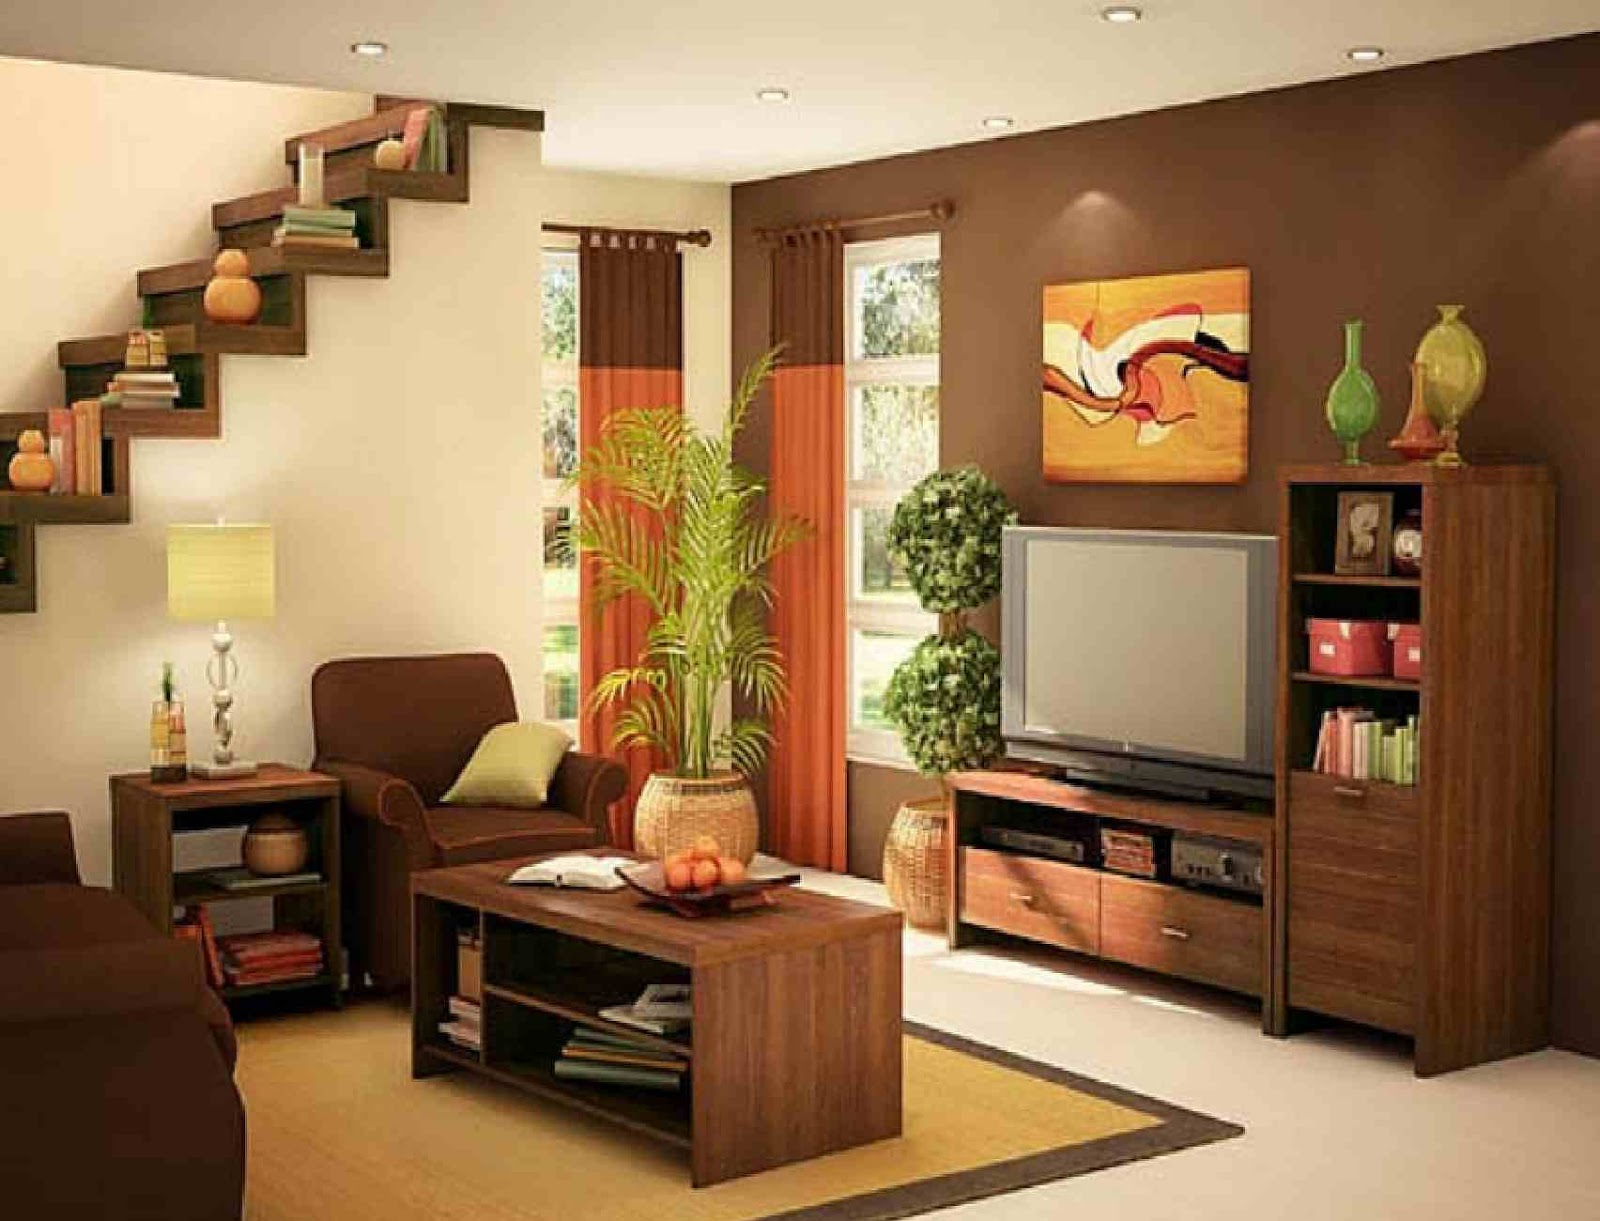 Home interior designs simple living room designs for Simple family room ideas